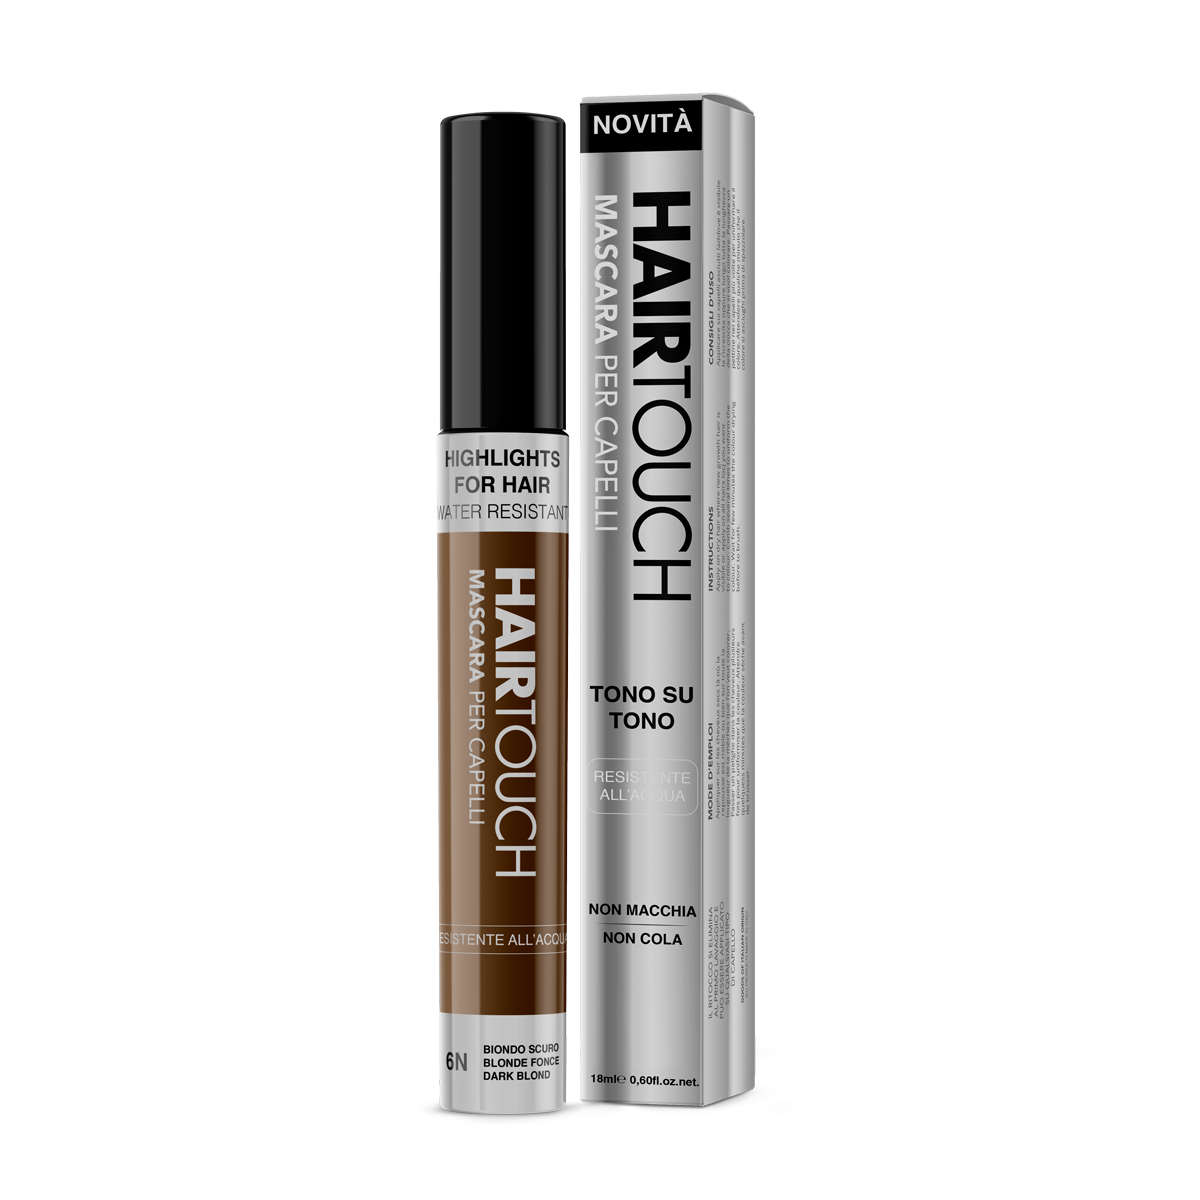 [:it]6N-biondo-scuro-hairtouch[:]